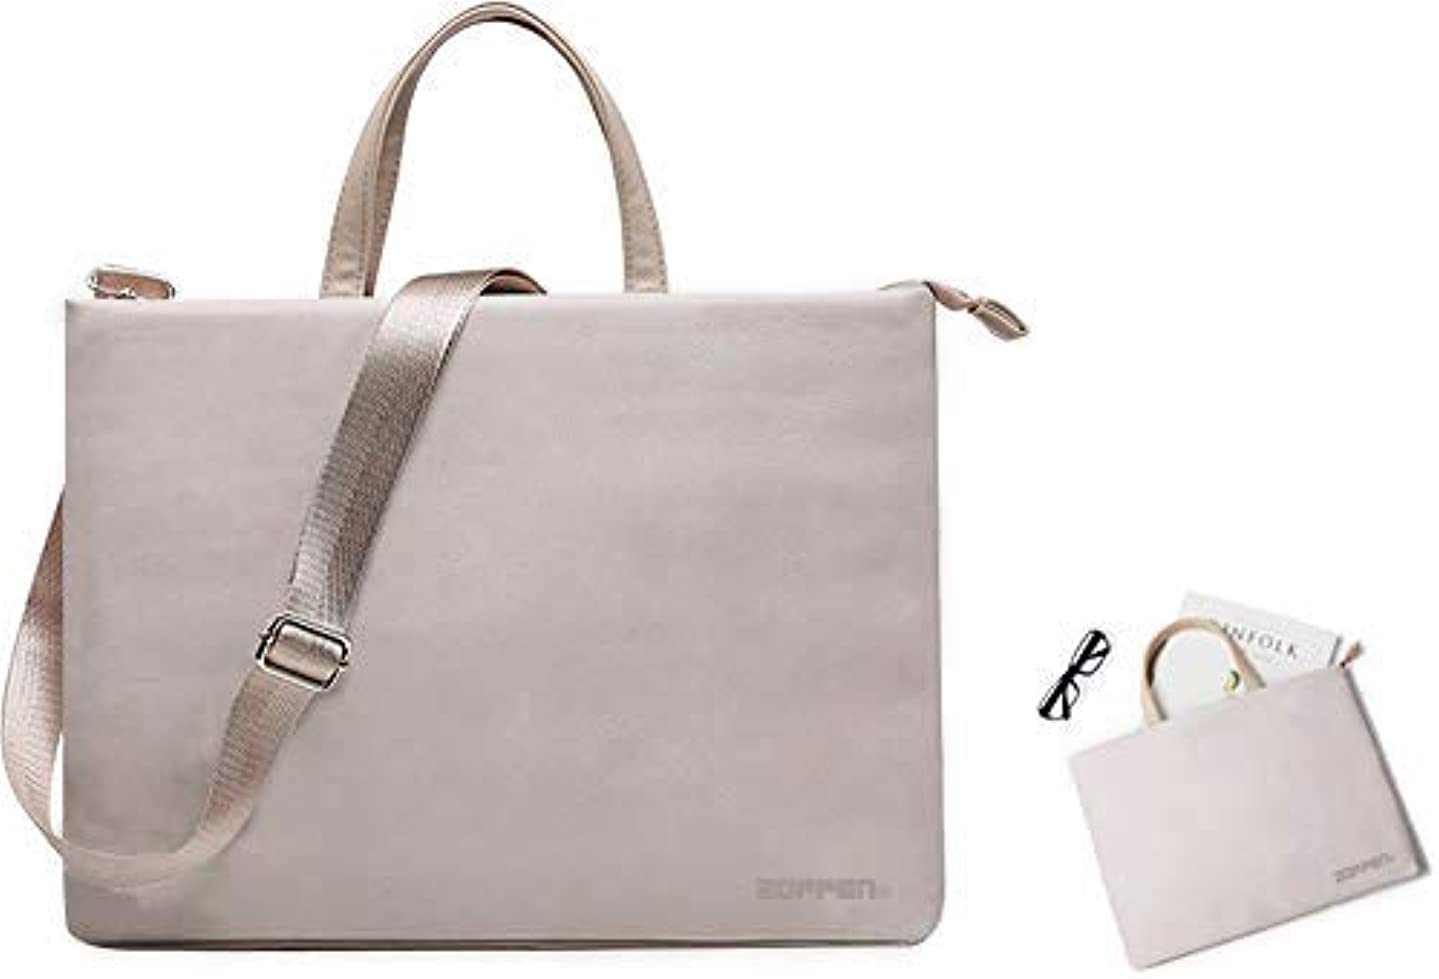 Zoppen Microfiber PU Leather Laptop Tote Bag Briefcase with Adjustable and Detachable Shoulder Strap for Women Fits 13-13.3inch Laptop,Grey